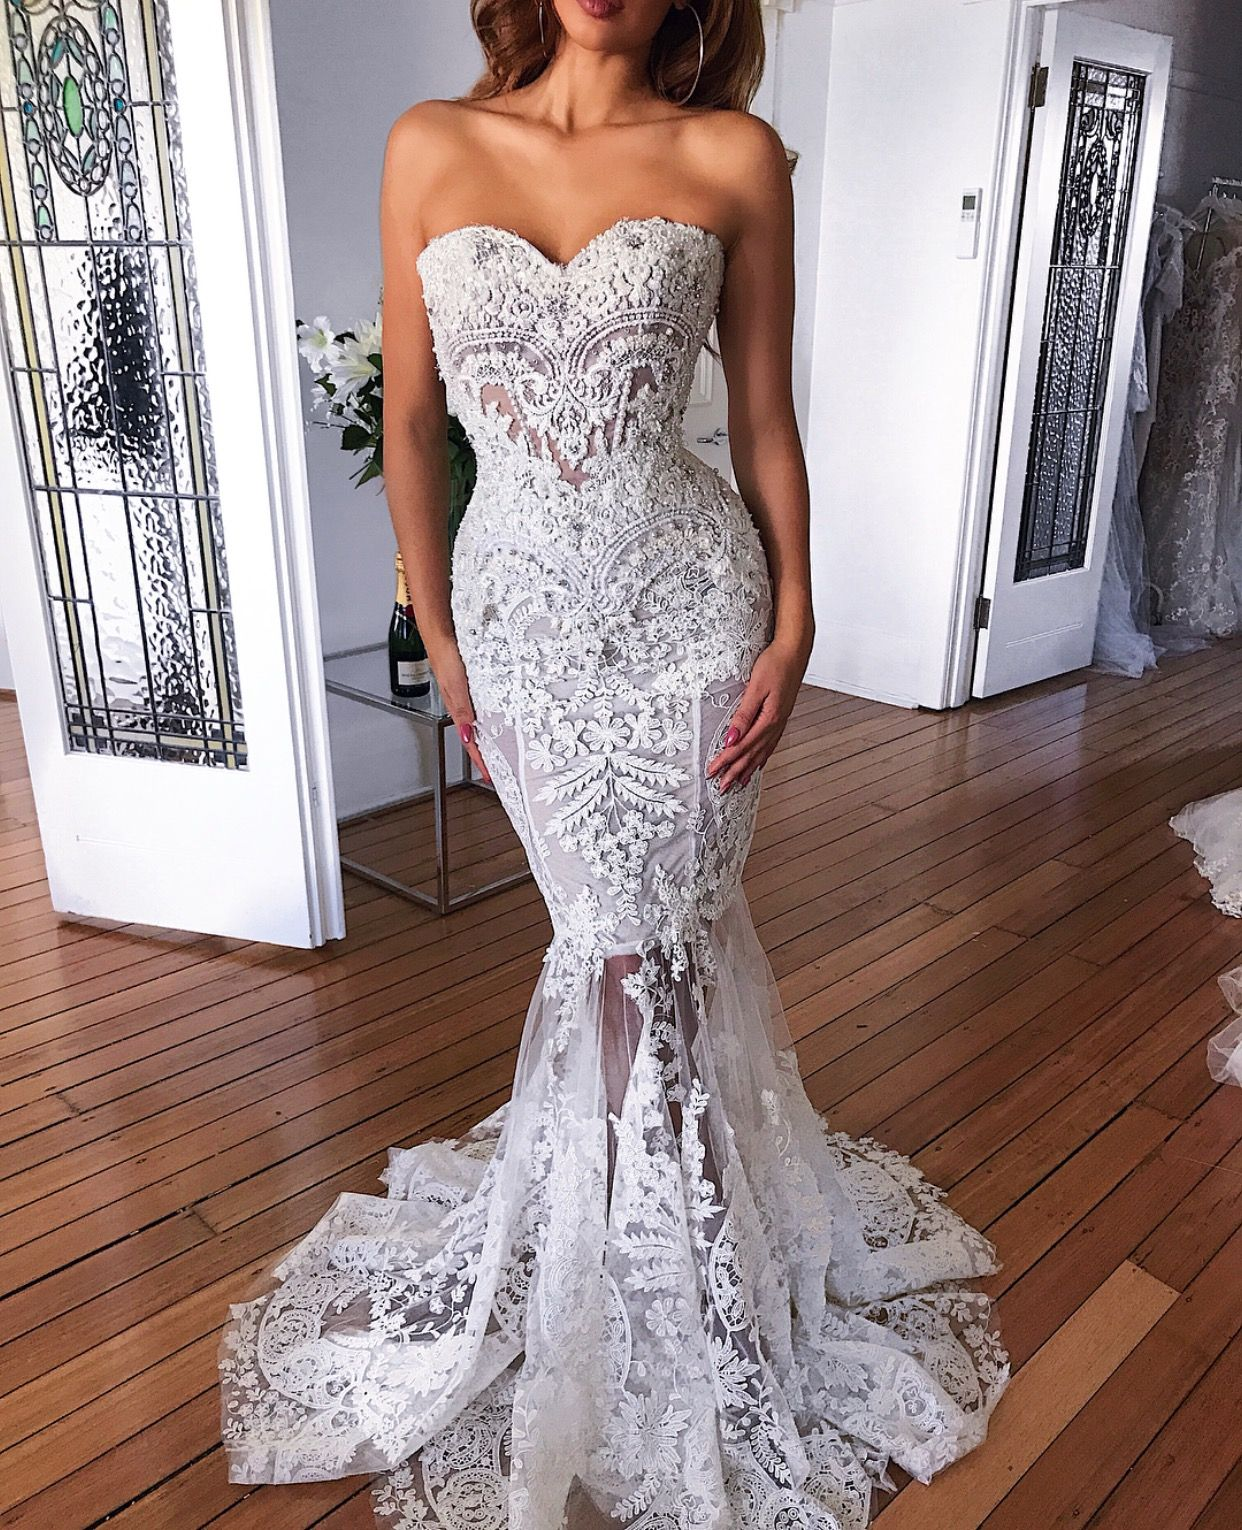 Nektaria wedding dress  Nektaria  Vestidos  Pinterest  Wedding dress Weddings and Wedding